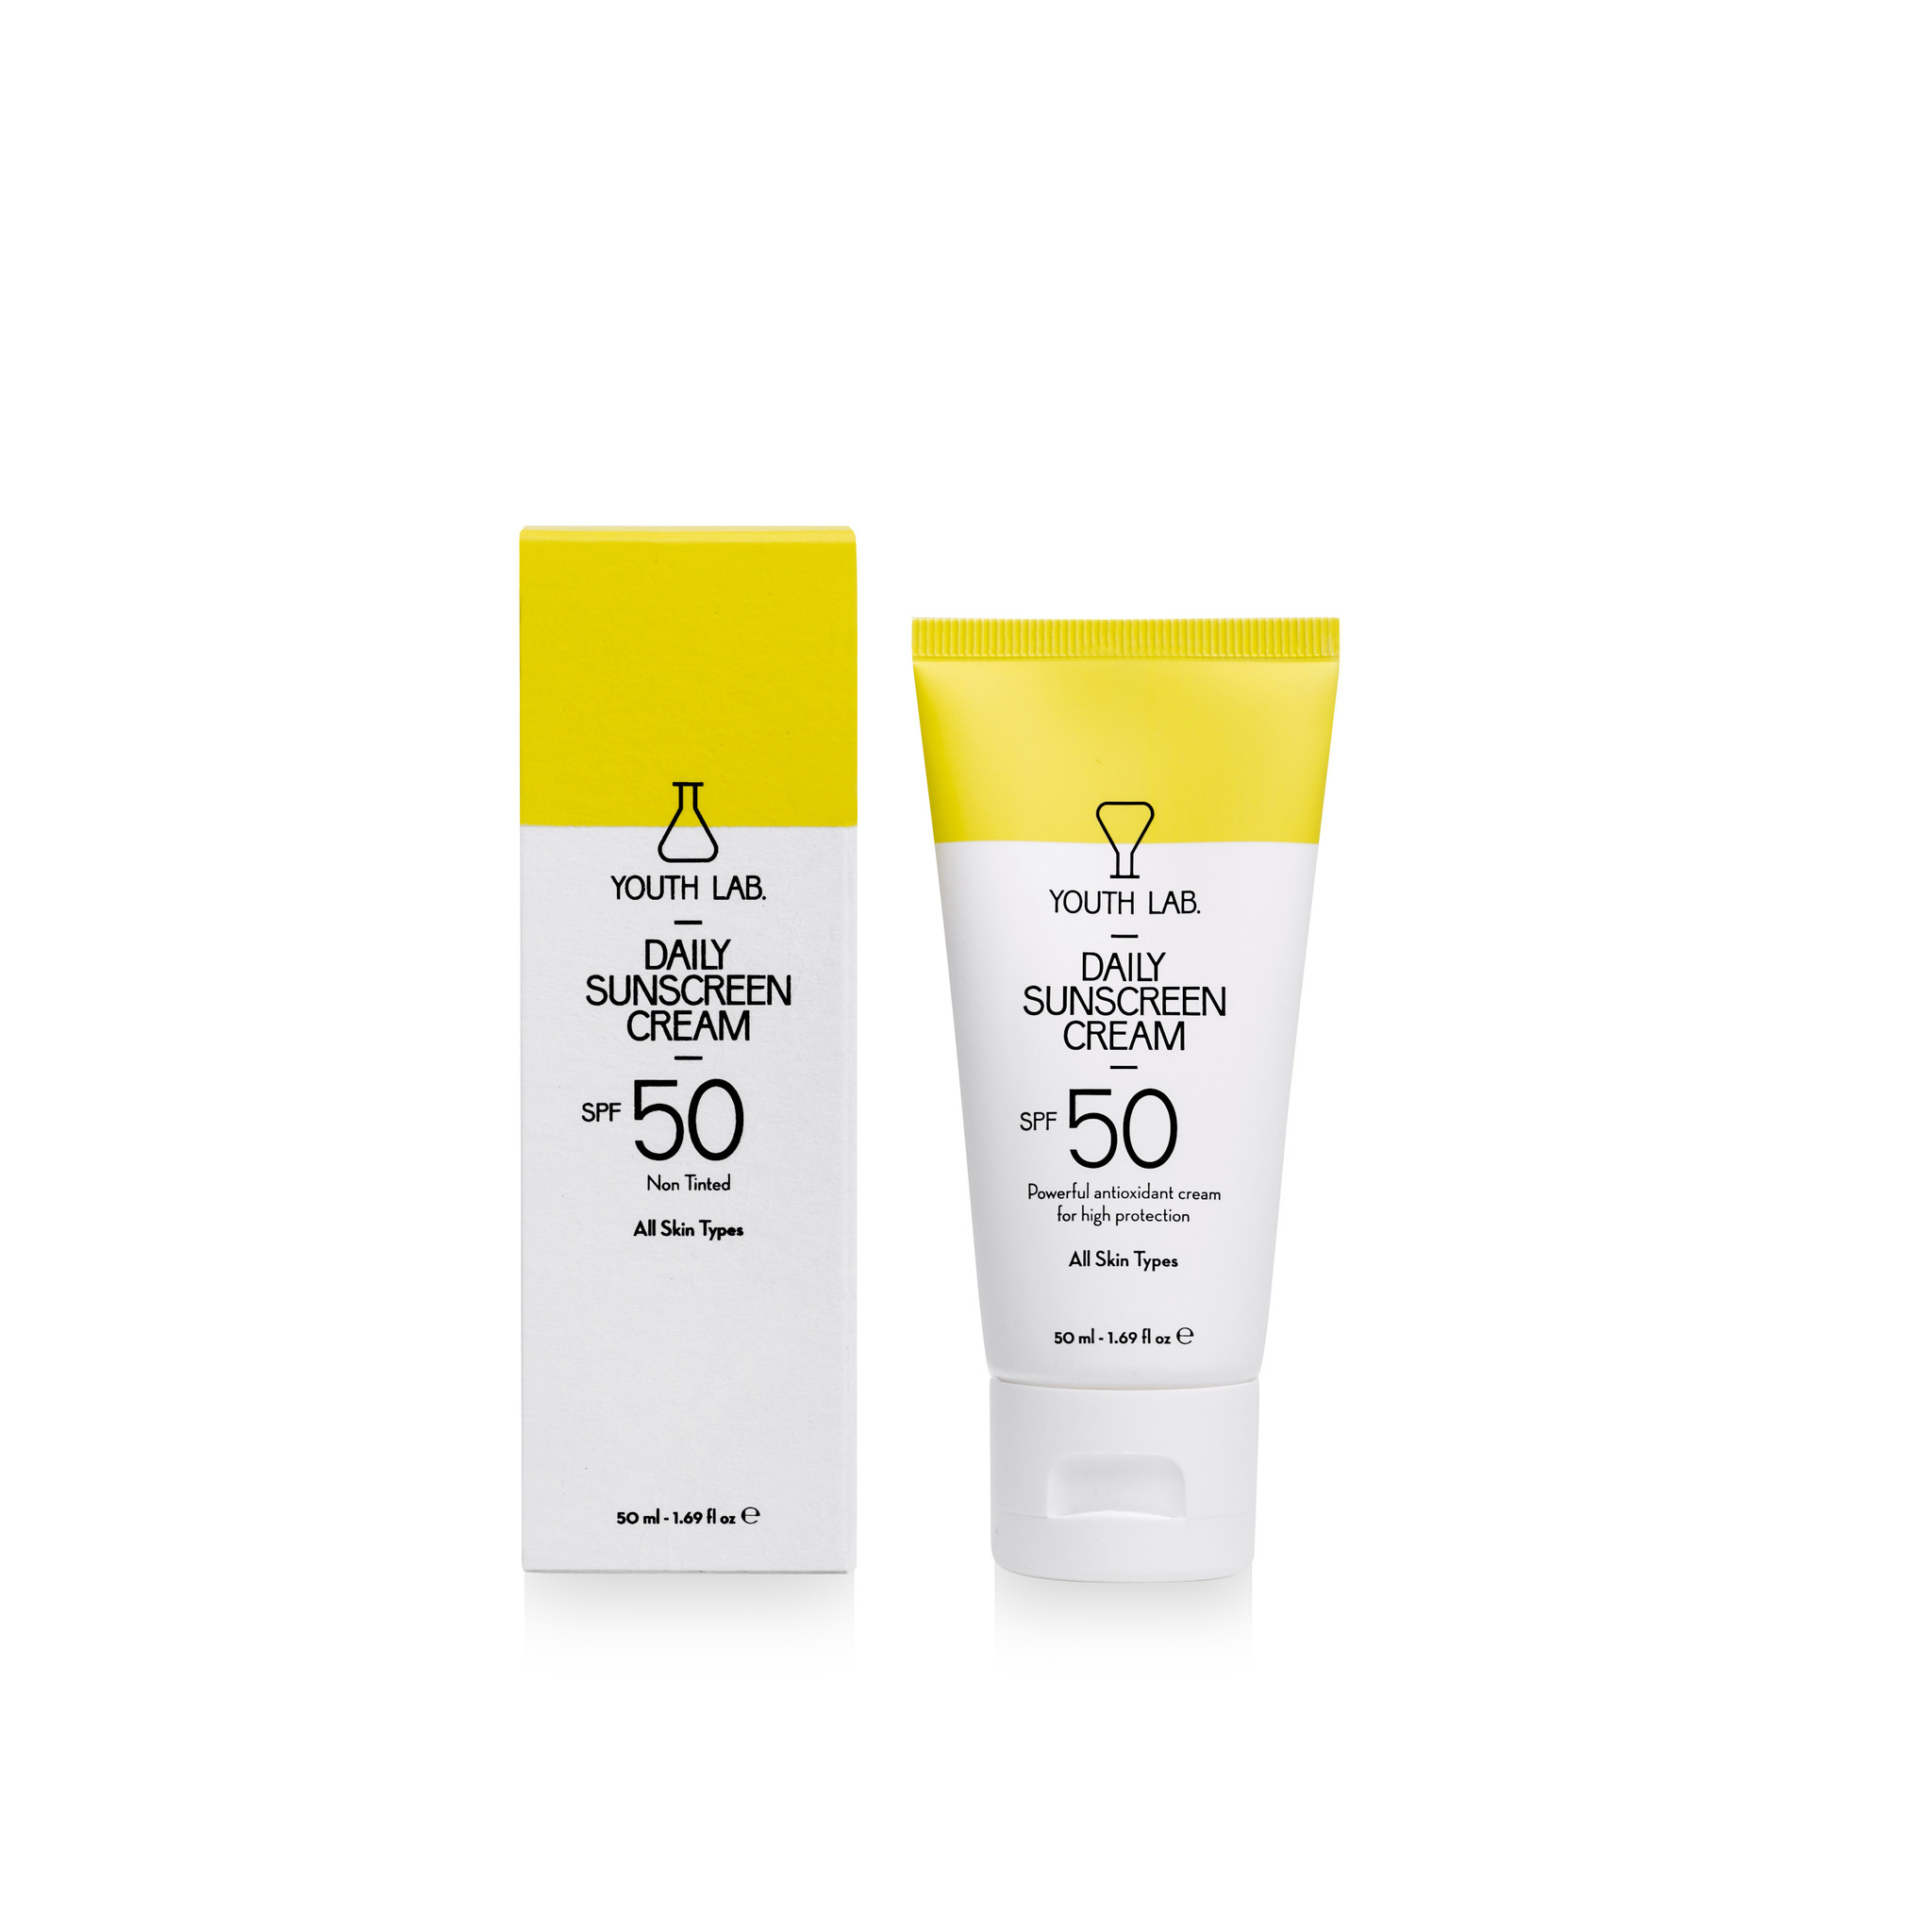 Youth Lab Youth lab Daily sunscreen cream spf50 not tinted All skin types